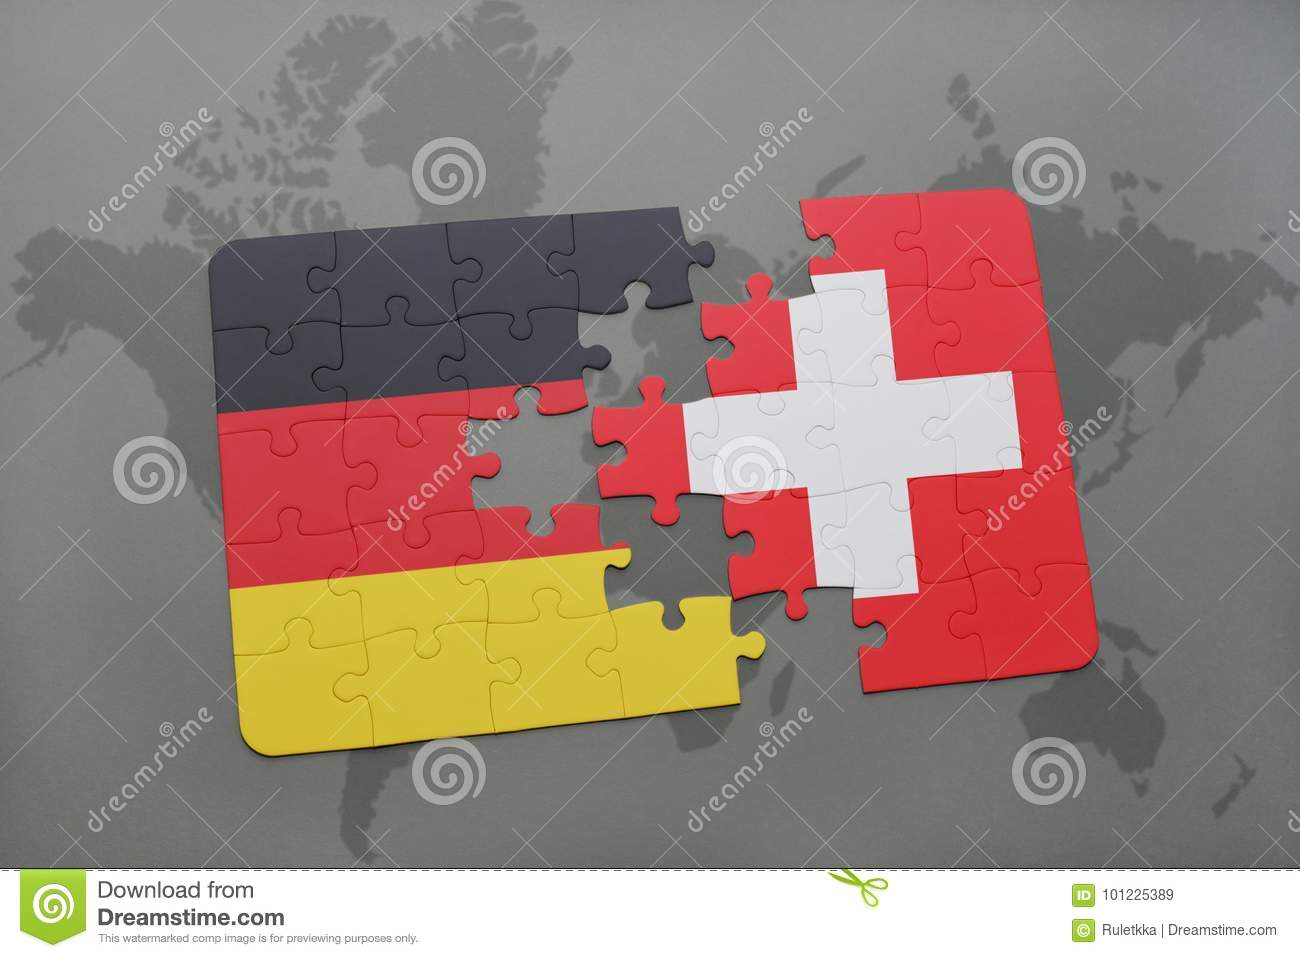 Puzzle With The National Flag Of Germany And Switzerland On A World